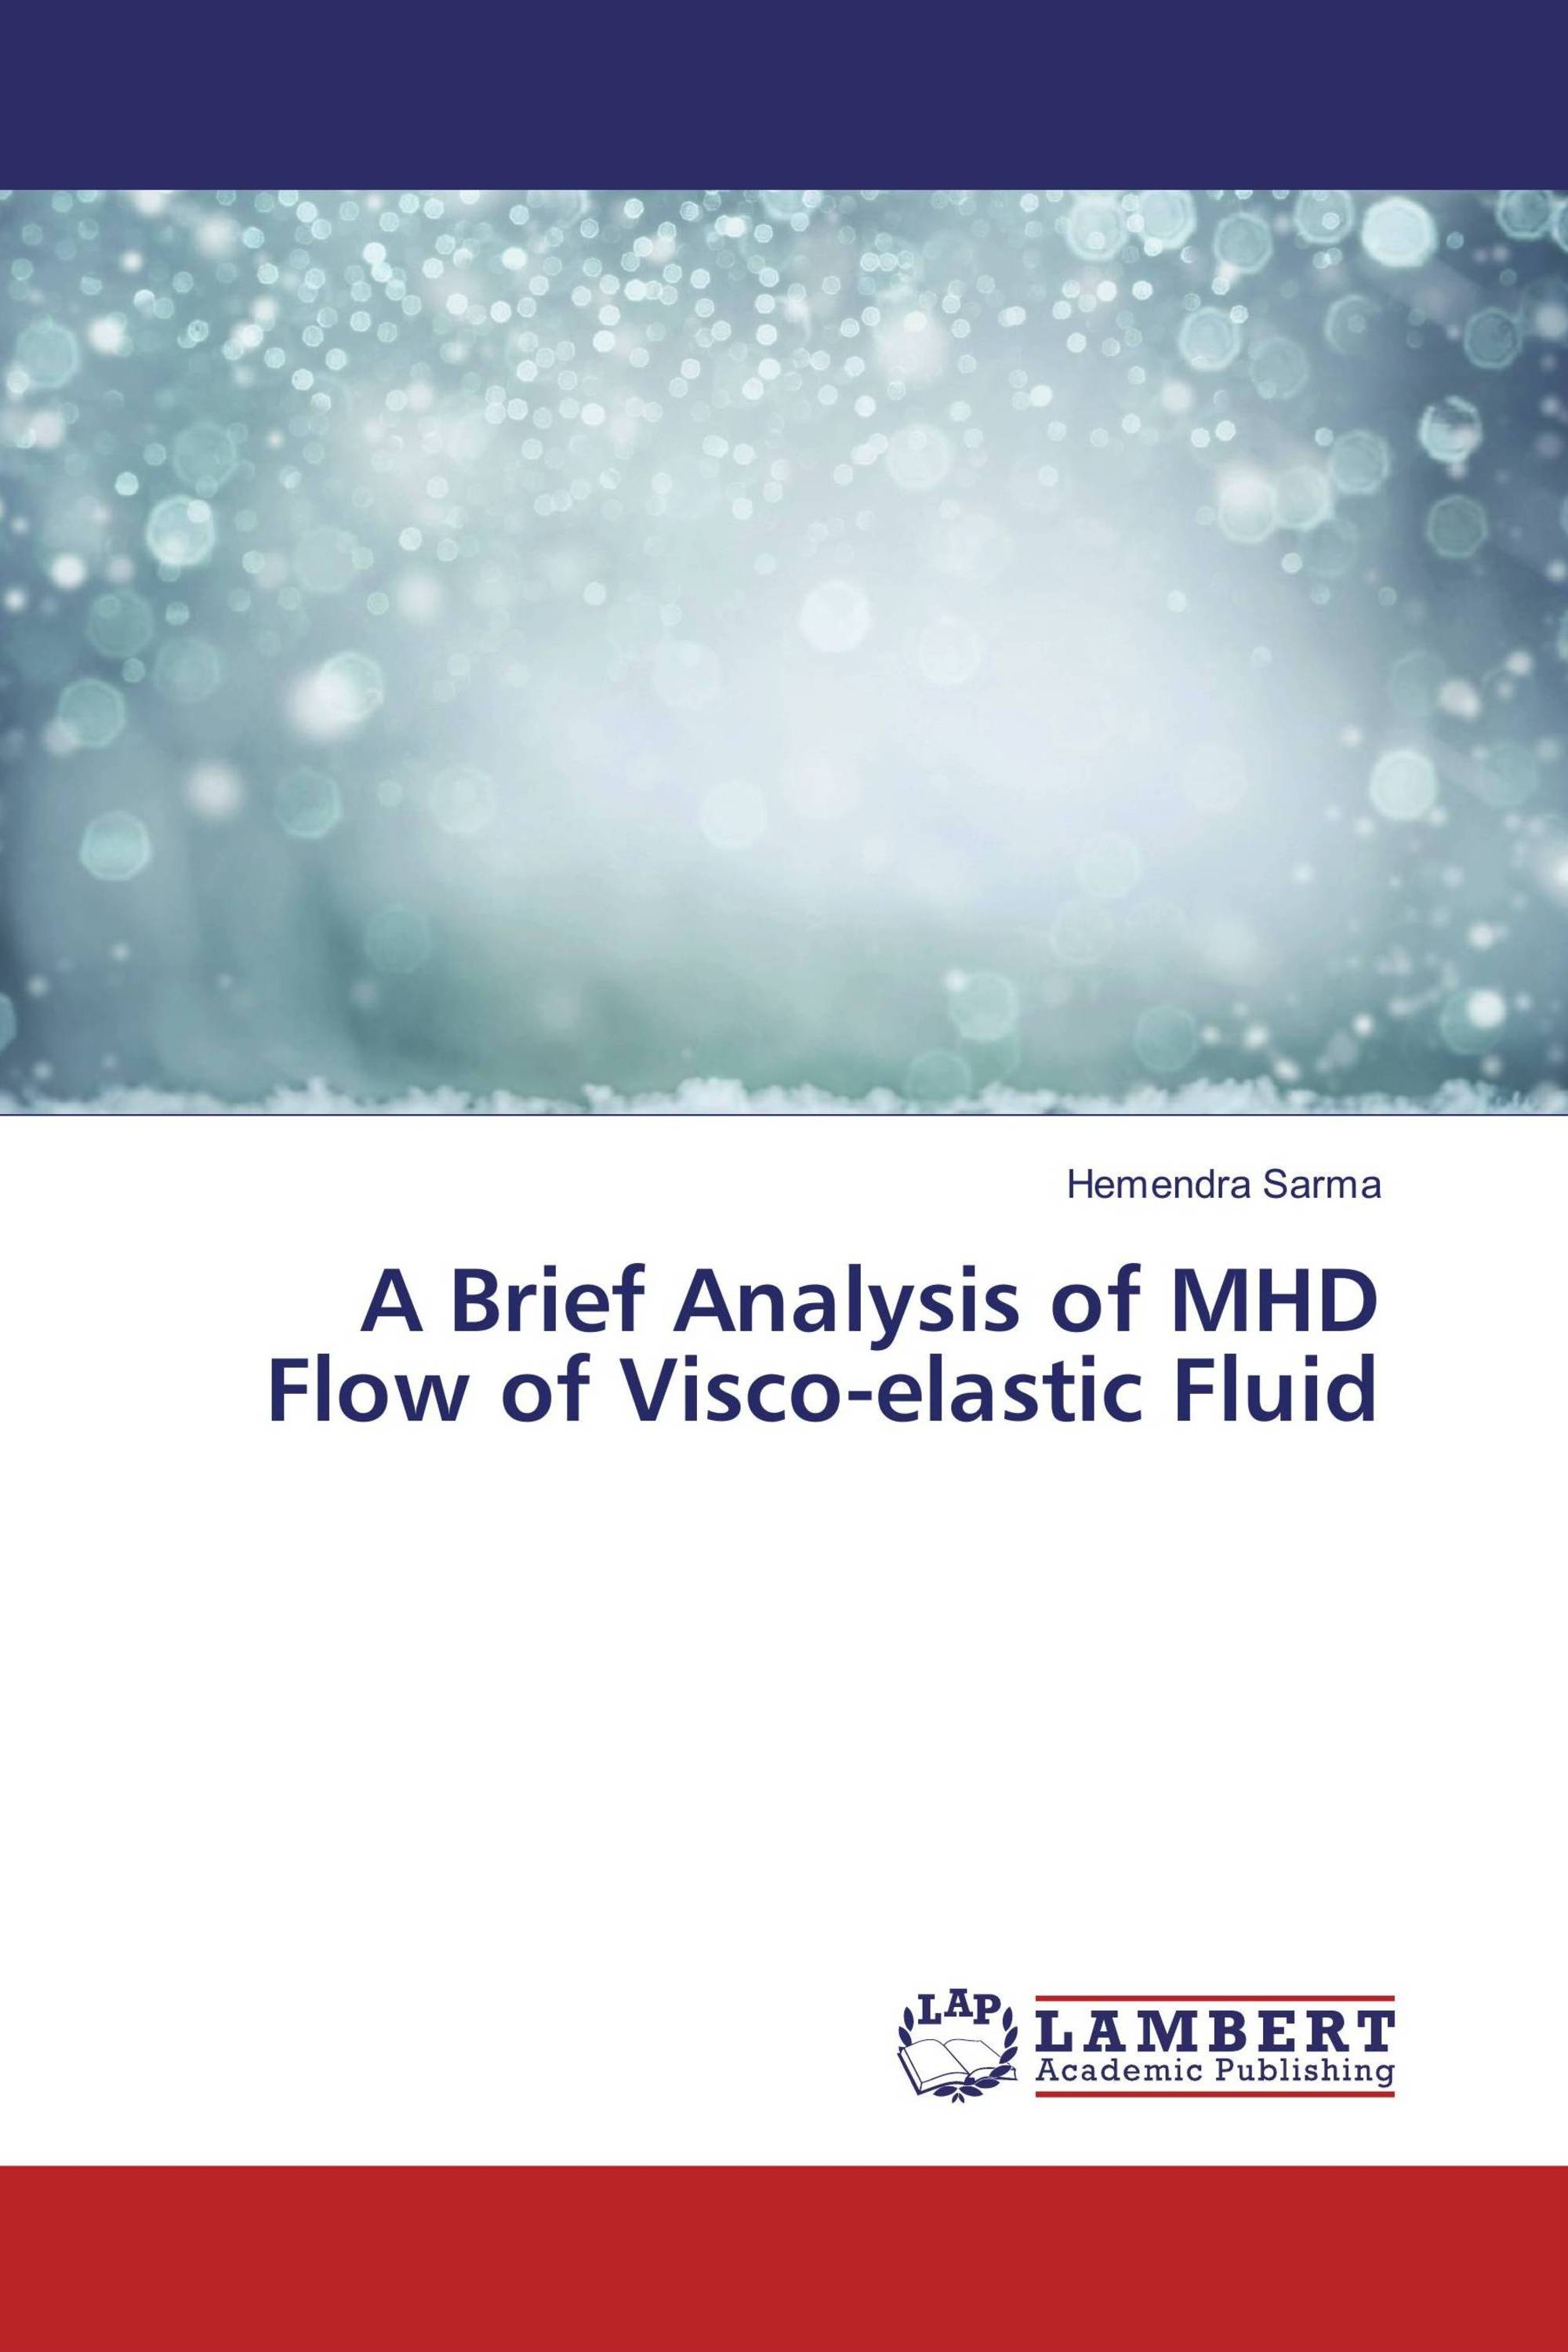 A Brief Analysis of MHD Flow of Visco-elastic Fluid